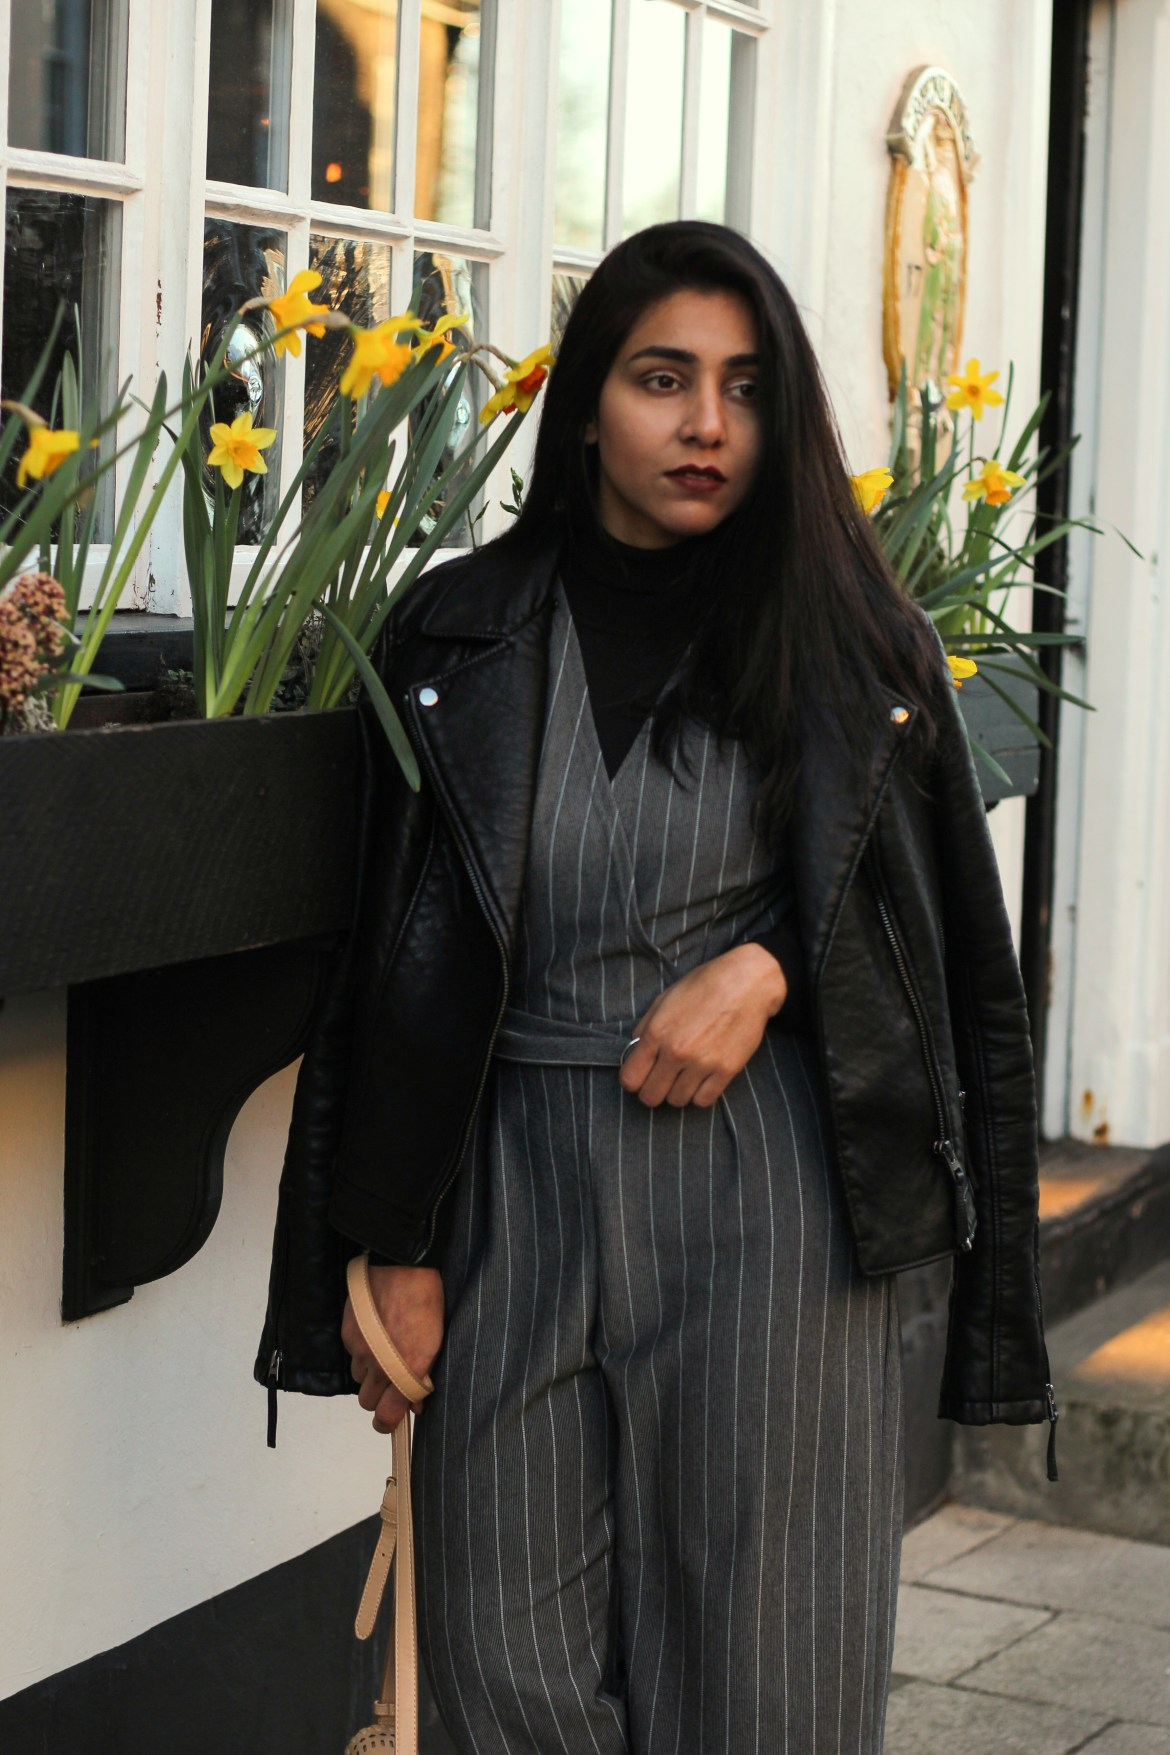 Huesofme Fashion blog, Norwich blogger, leather and Pinstripe spring trend, 2017 spring trend, Fashion blogger in UK, UK fashion blogger, Streetstyle blog